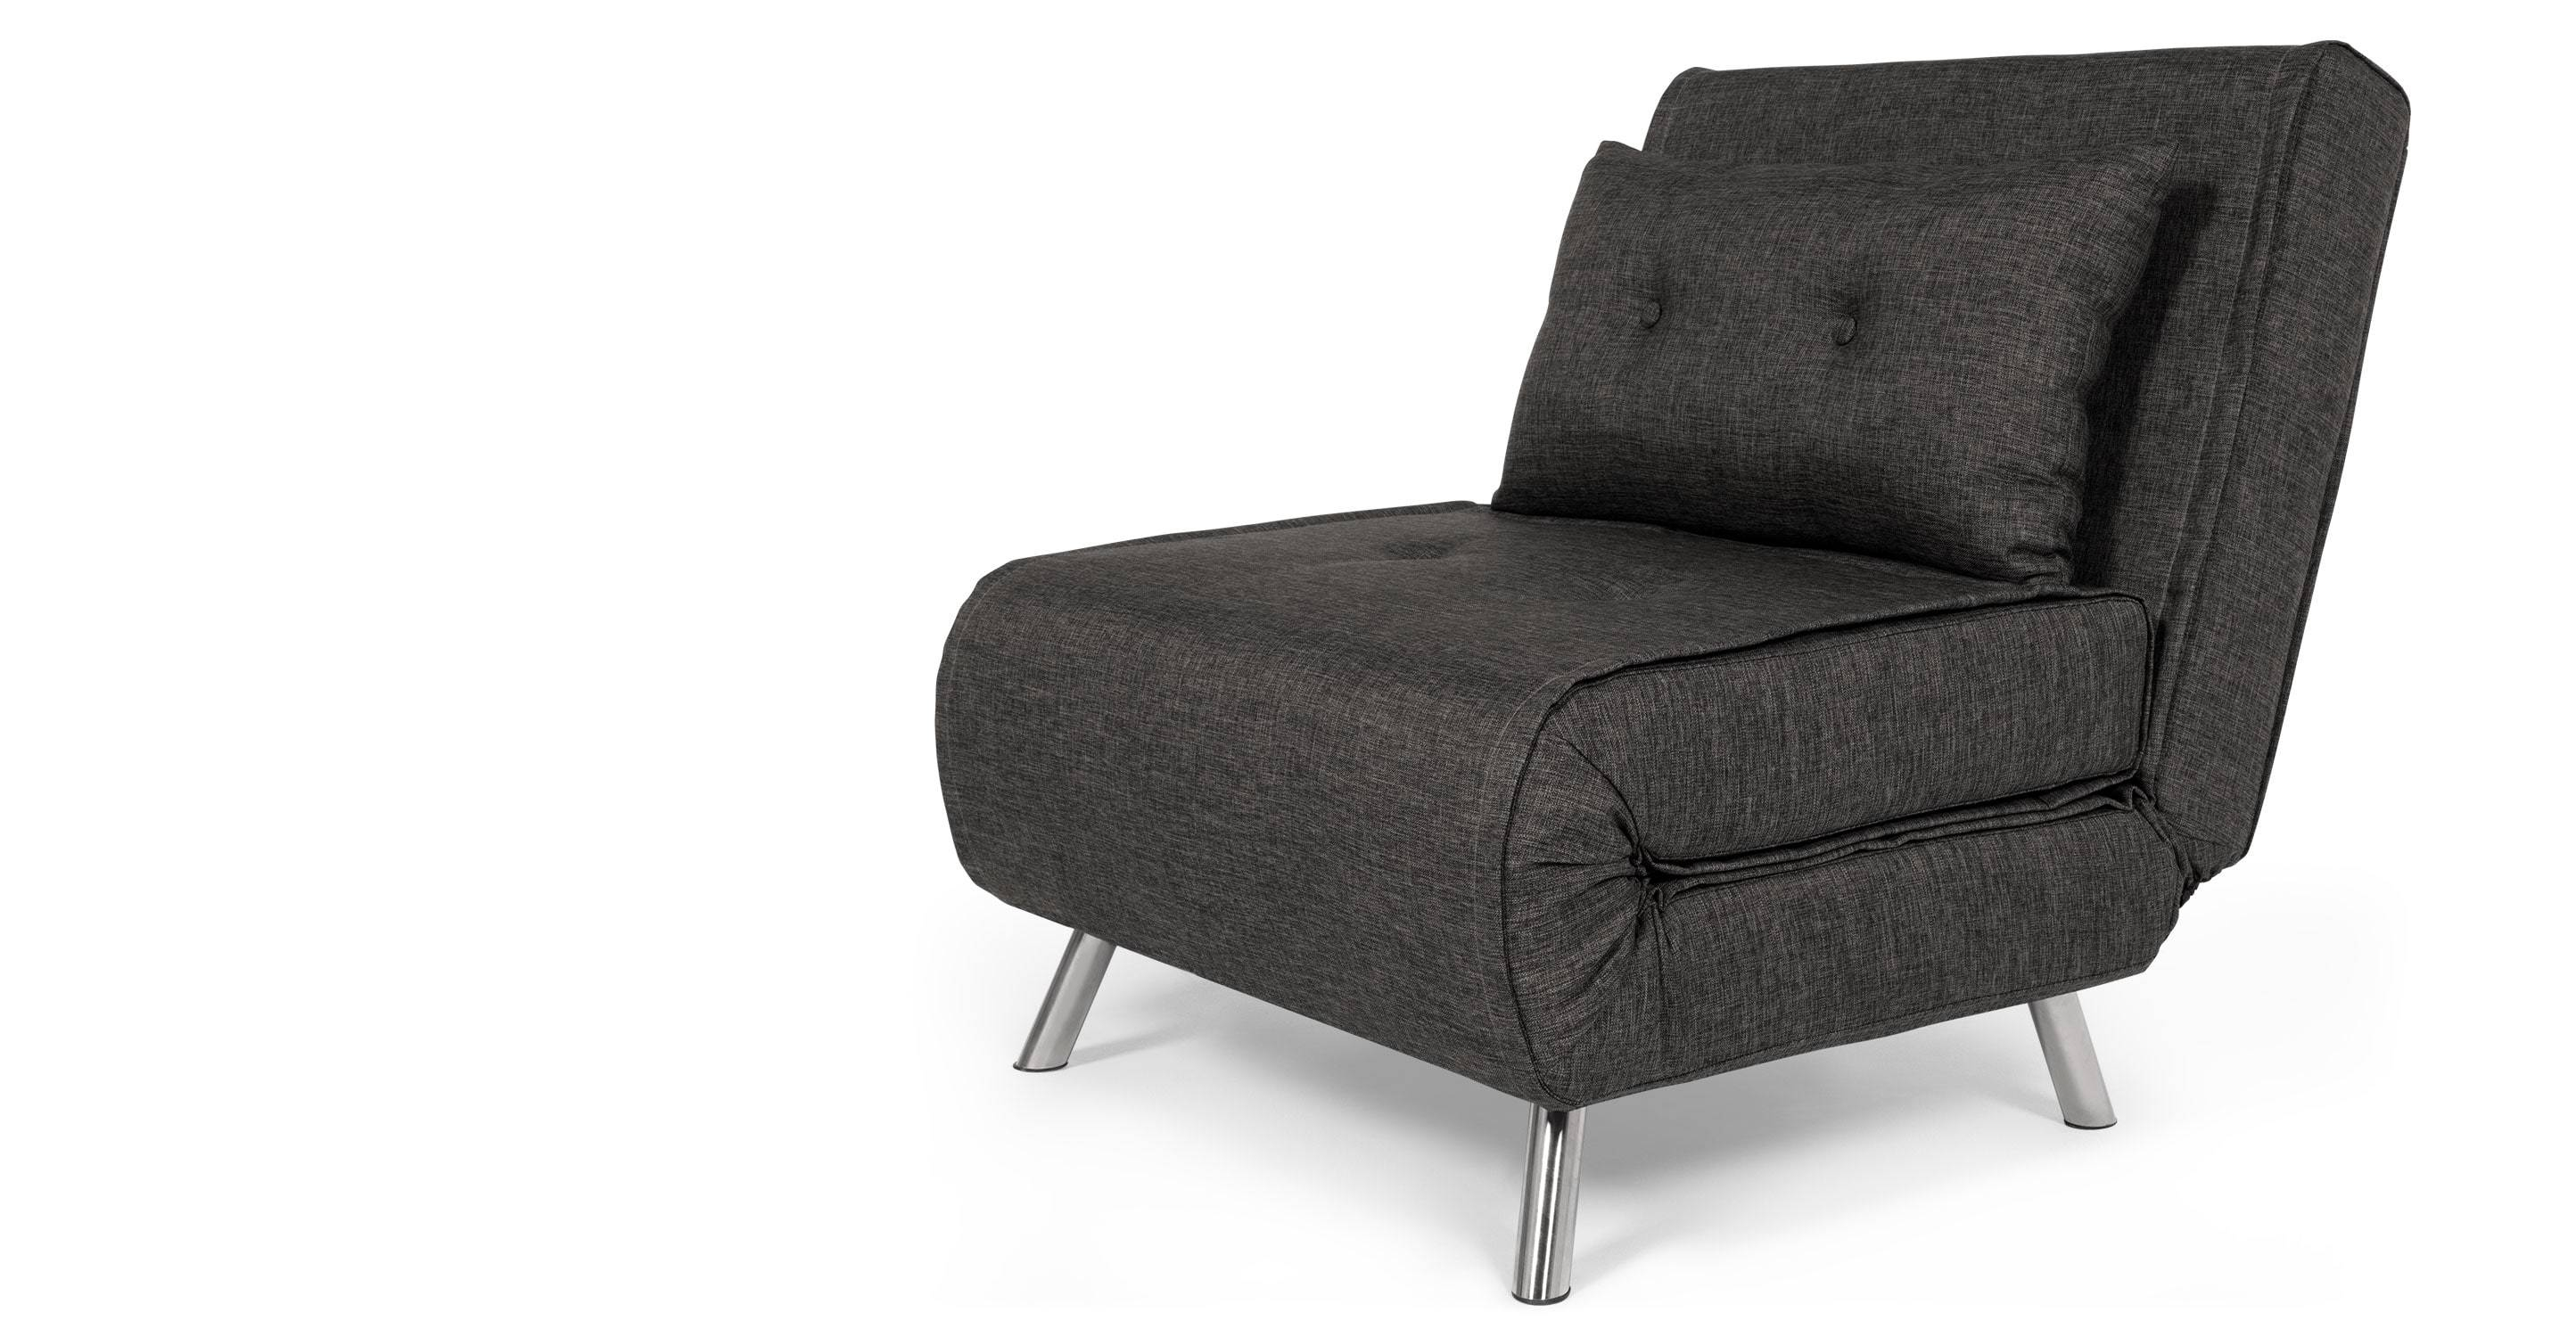 Haru Single Sofa Bed, Cygnet Grey | Made Regarding Single Sofa Bed Chairs (View 9 of 15)